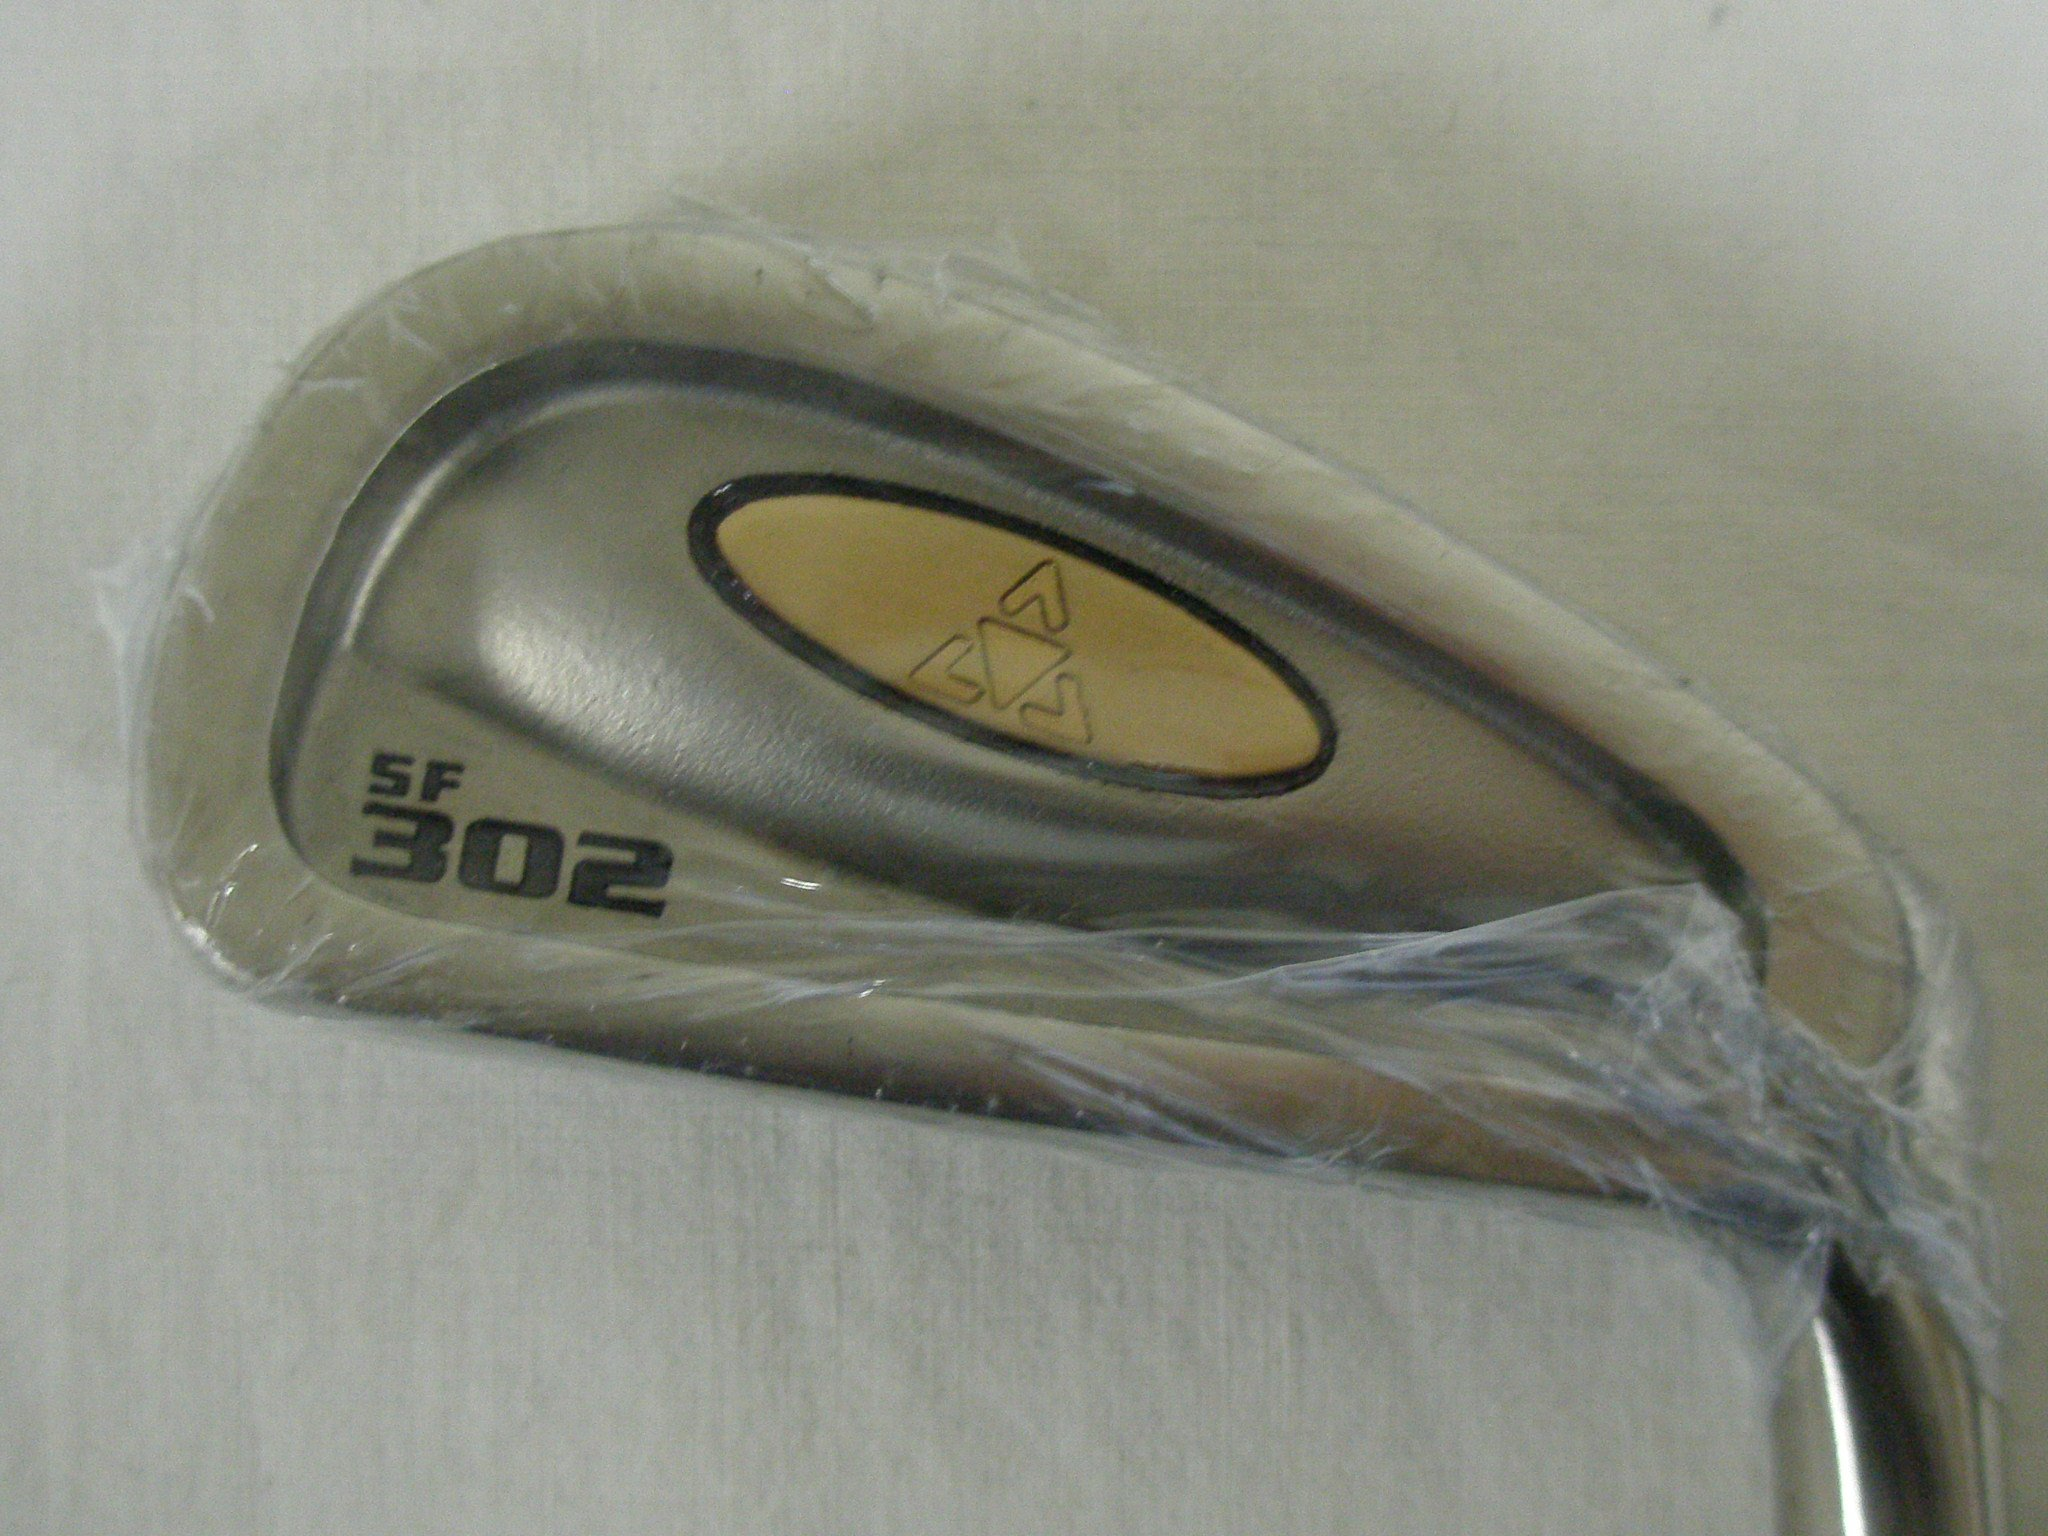 Orlimar SF 302 4 iron (Graphite Stiff) 4i Golf Club NEW by Orlimar (Image #1)